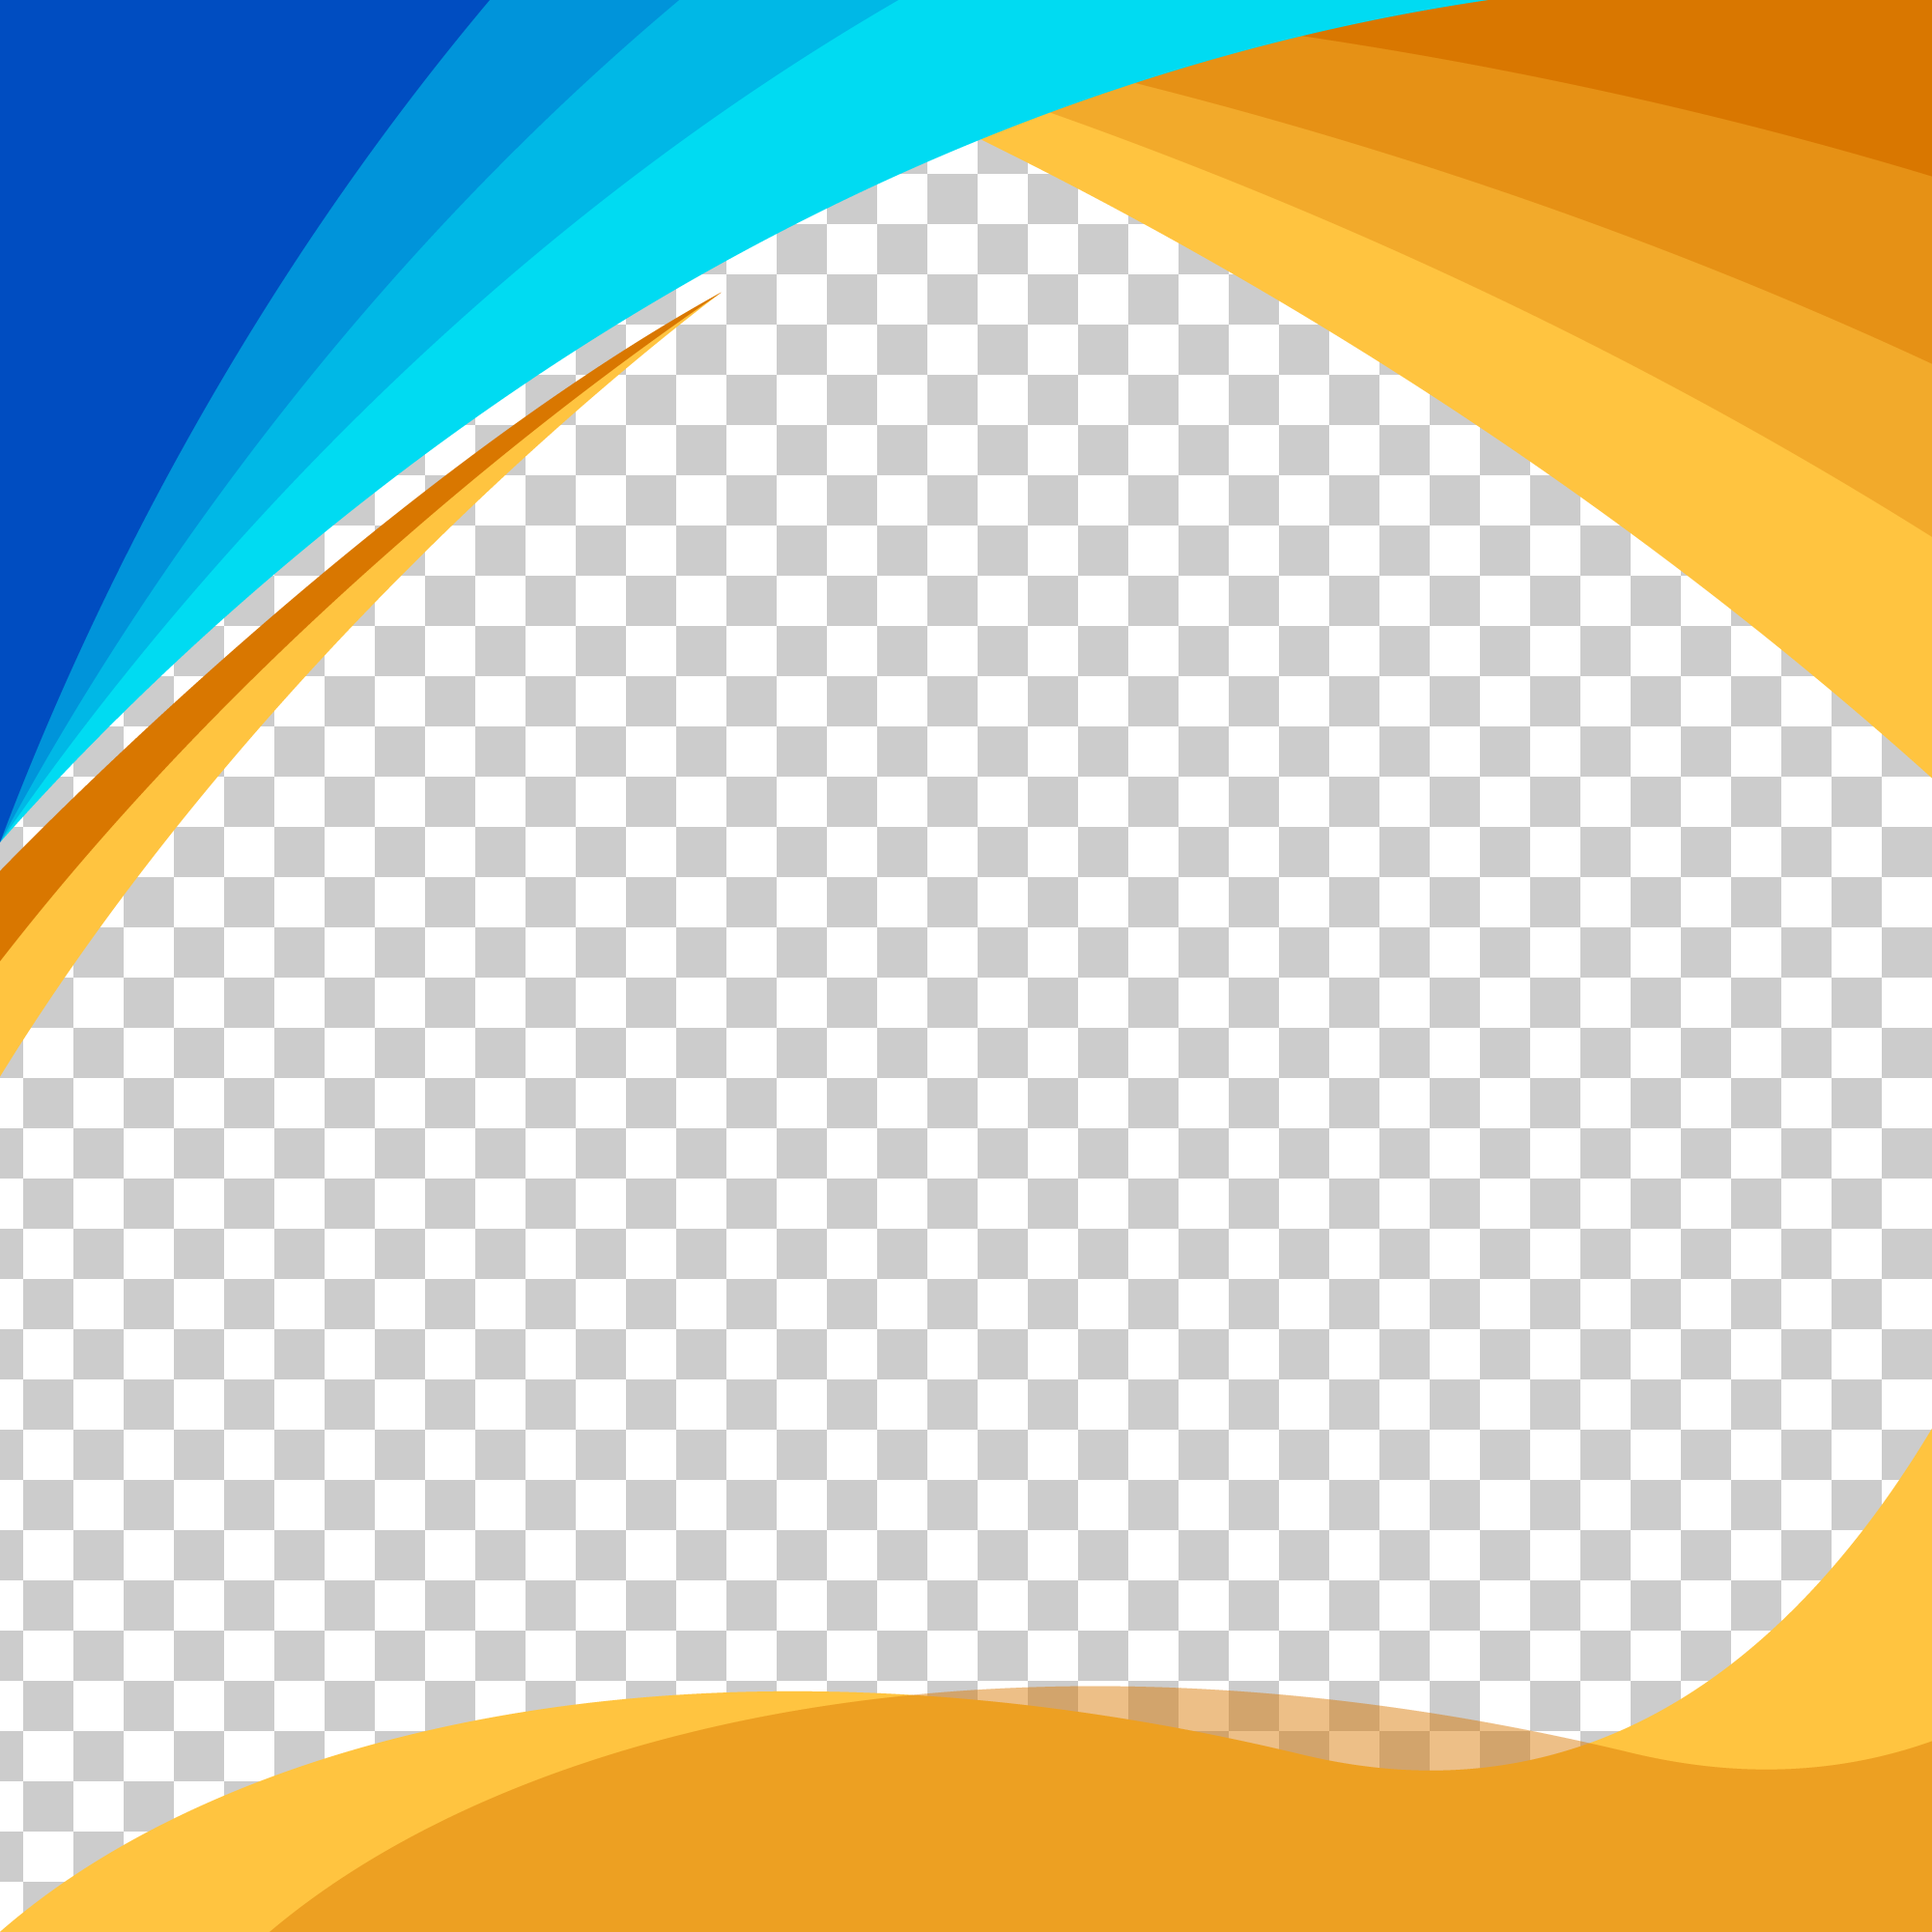 Blue And Orange Wavy Shapes On Transparent Background Curved Background Abstract Wavy Png And Vector With Transparent Background For Free Download Transparent Background Geometric Background Abstract Backgrounds